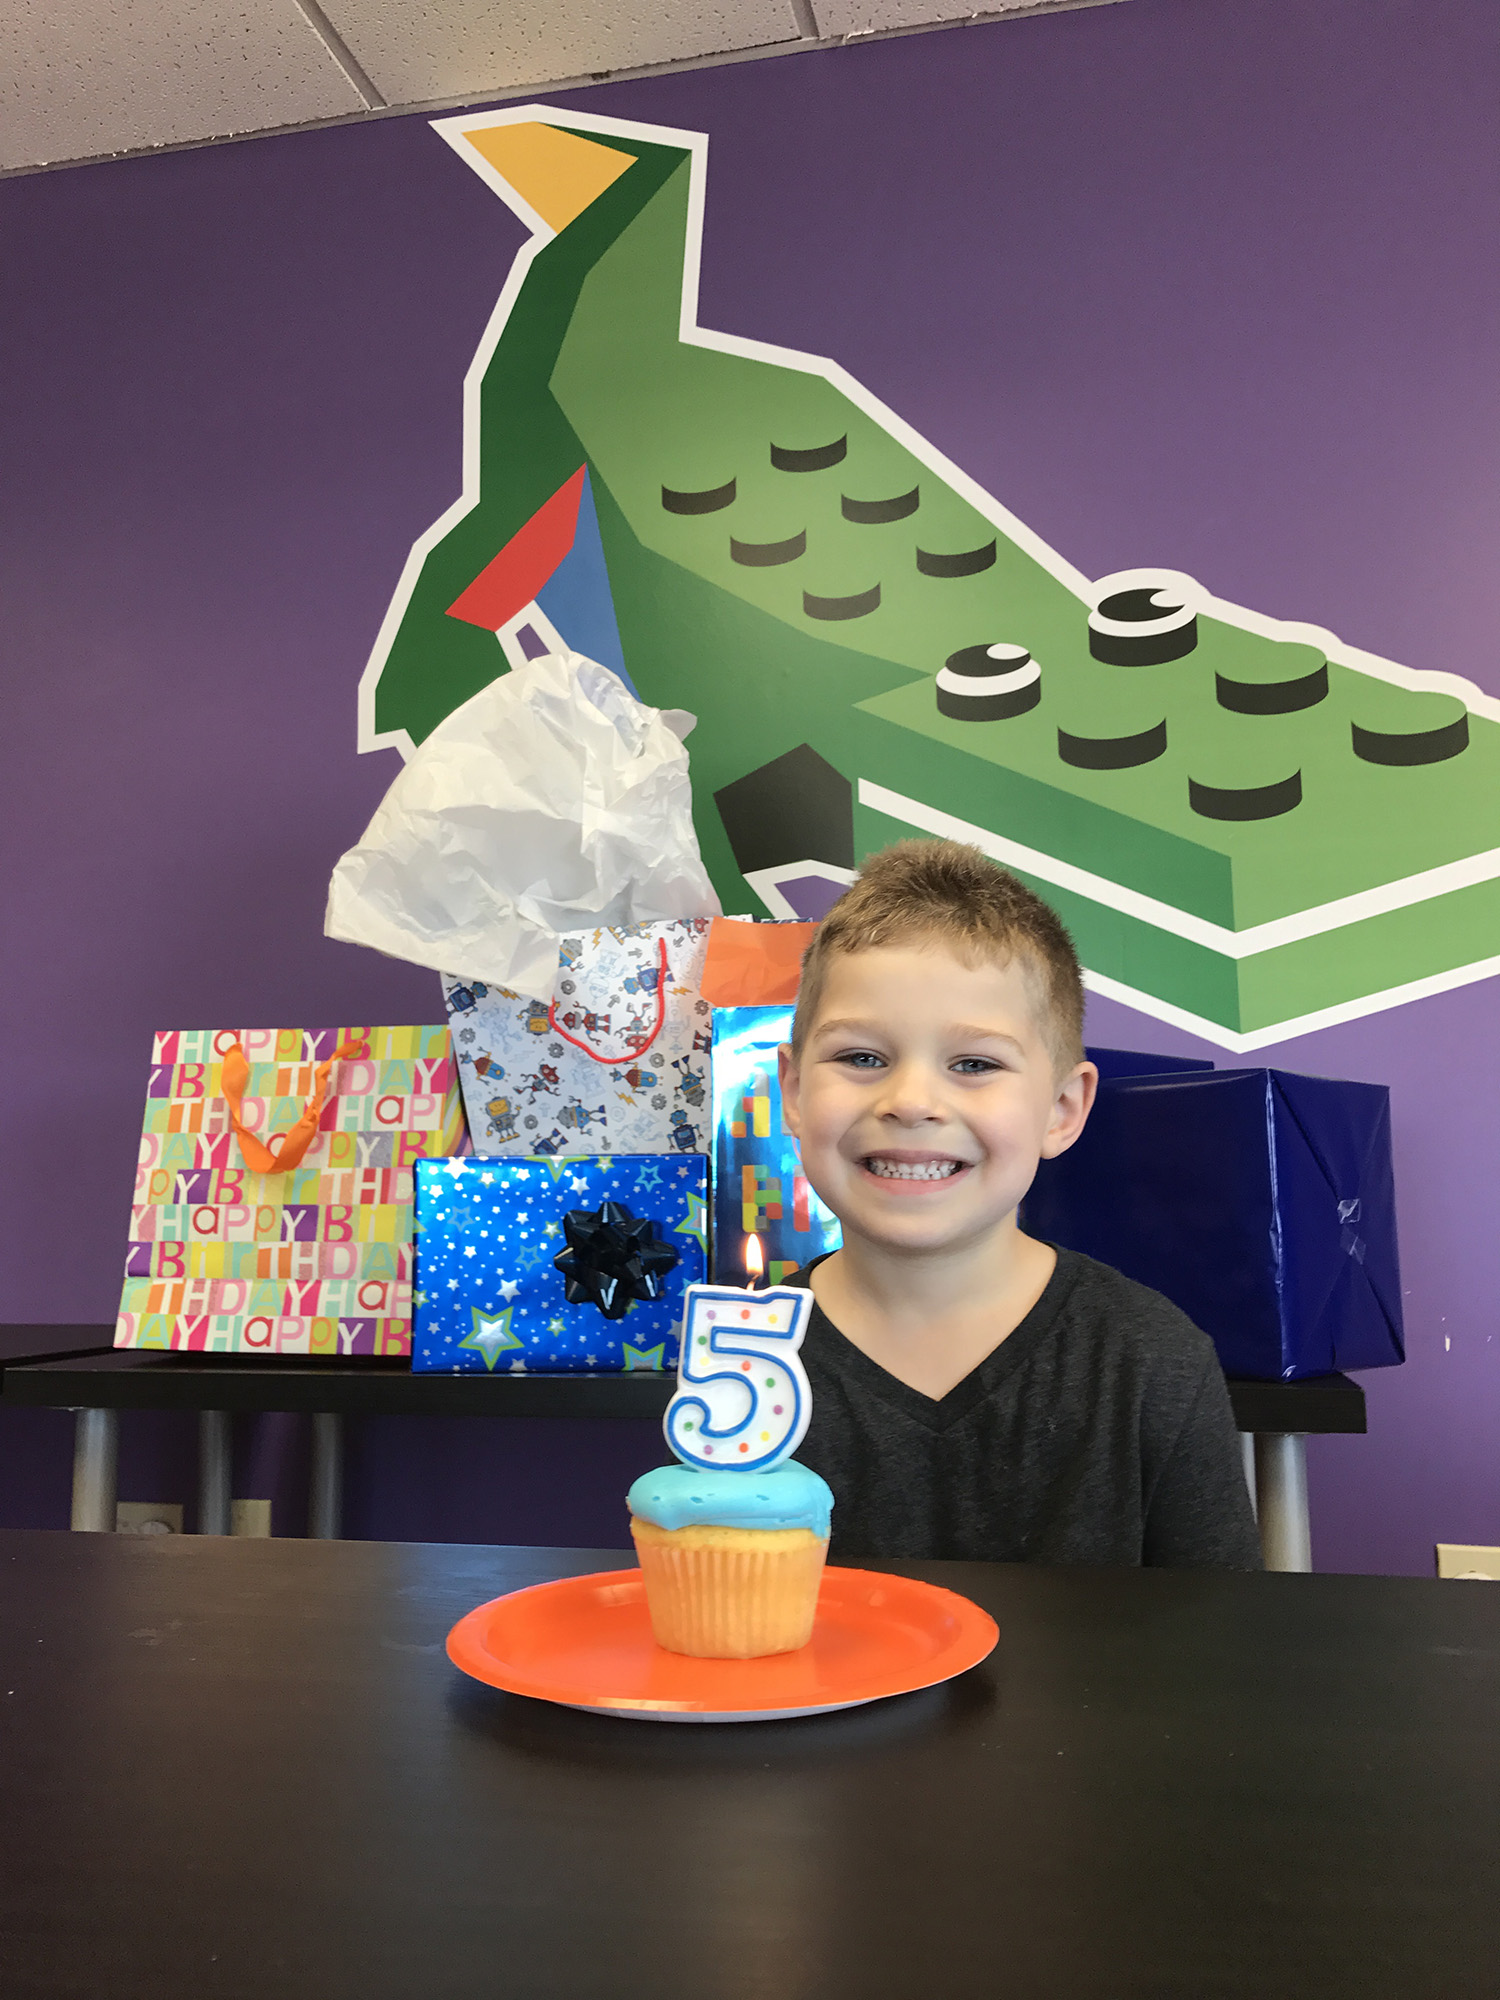 Boy smiling while celebrating his birthday